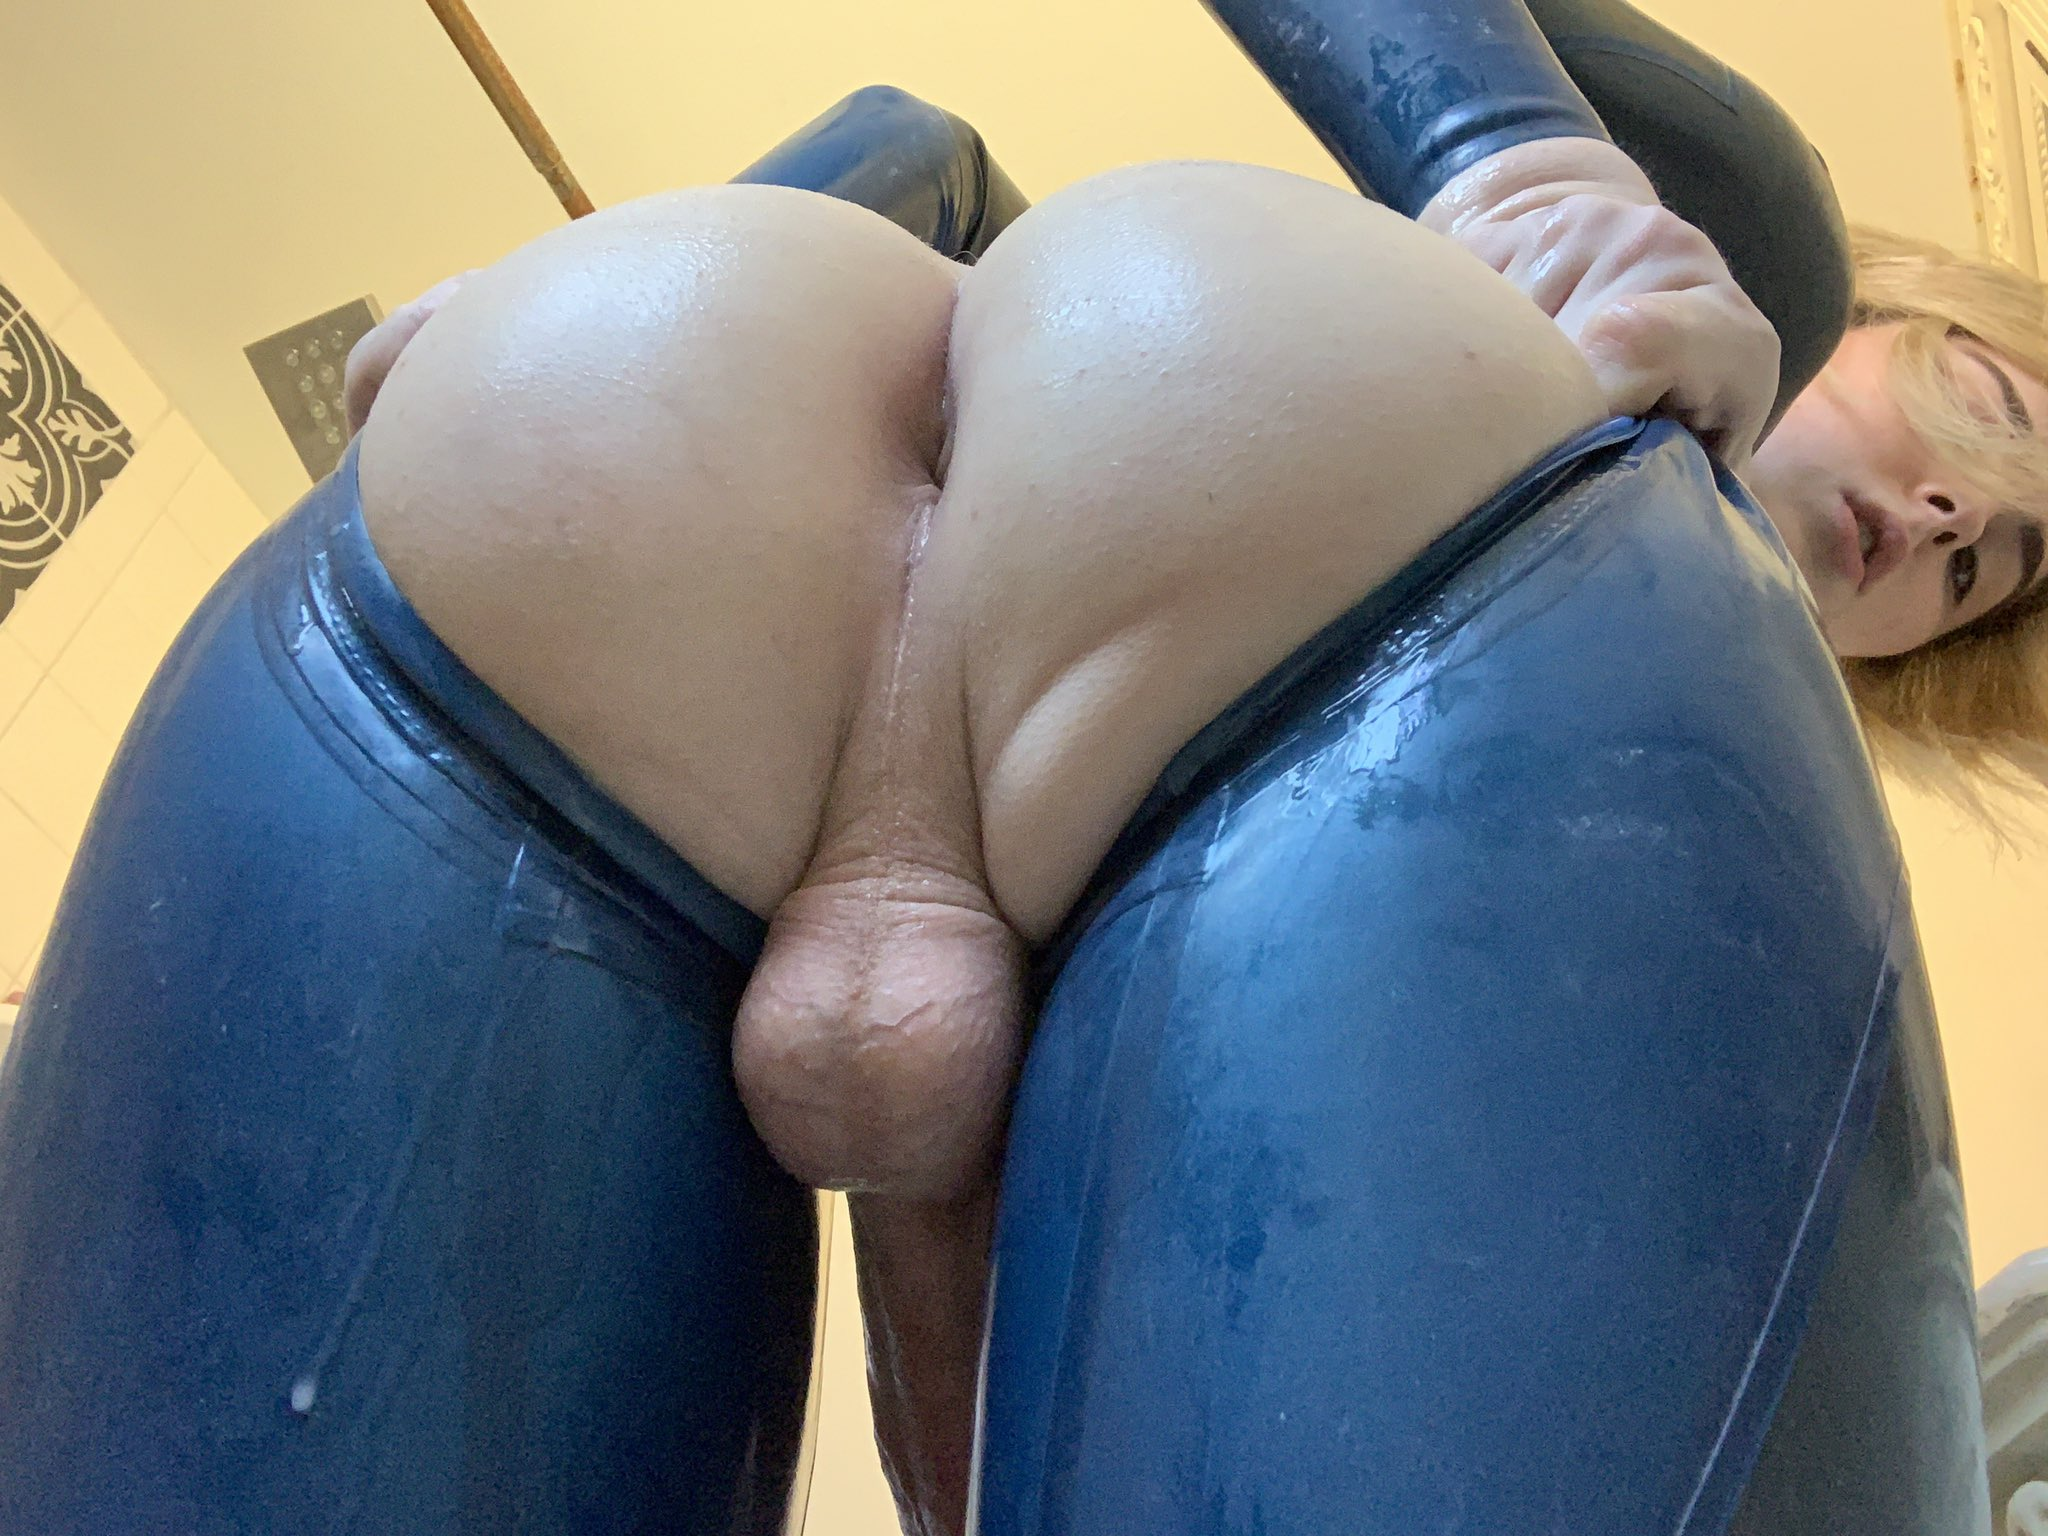 small cock porno tube with xhamster embed movies sorted